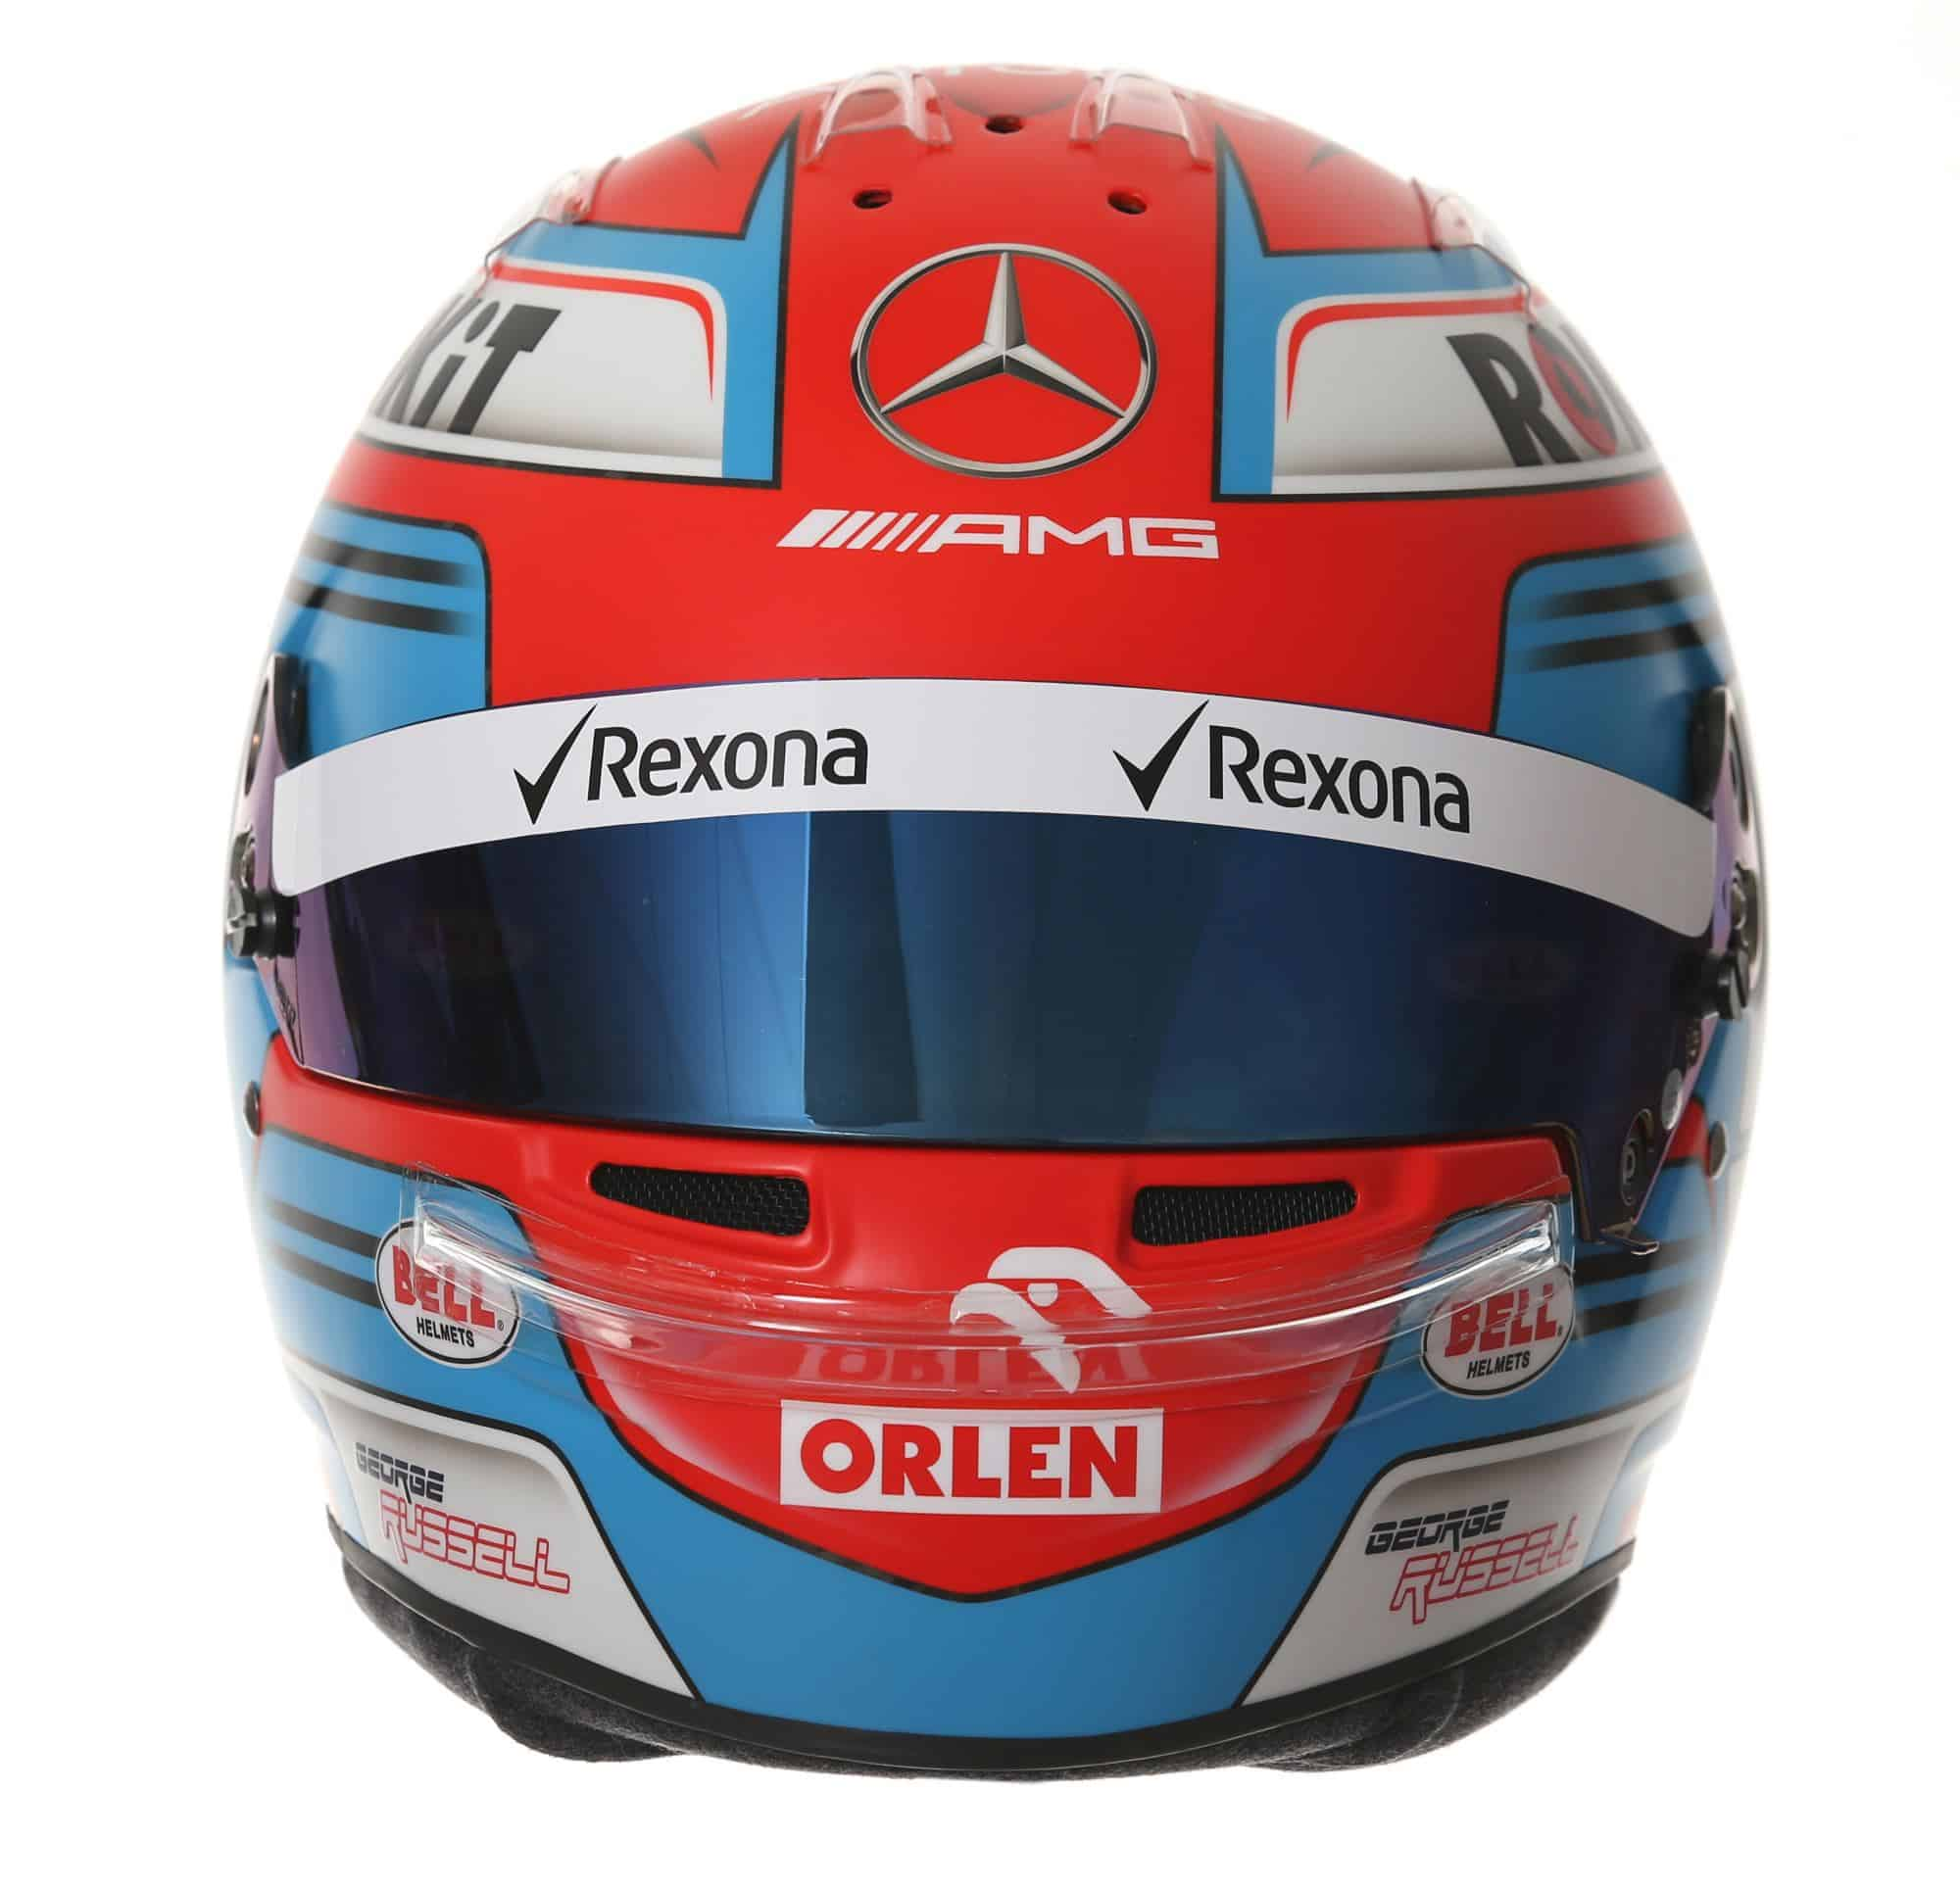 2019 Rokit Williams Racing George Russell helmet front Photo Williams Edited by MAXF1net